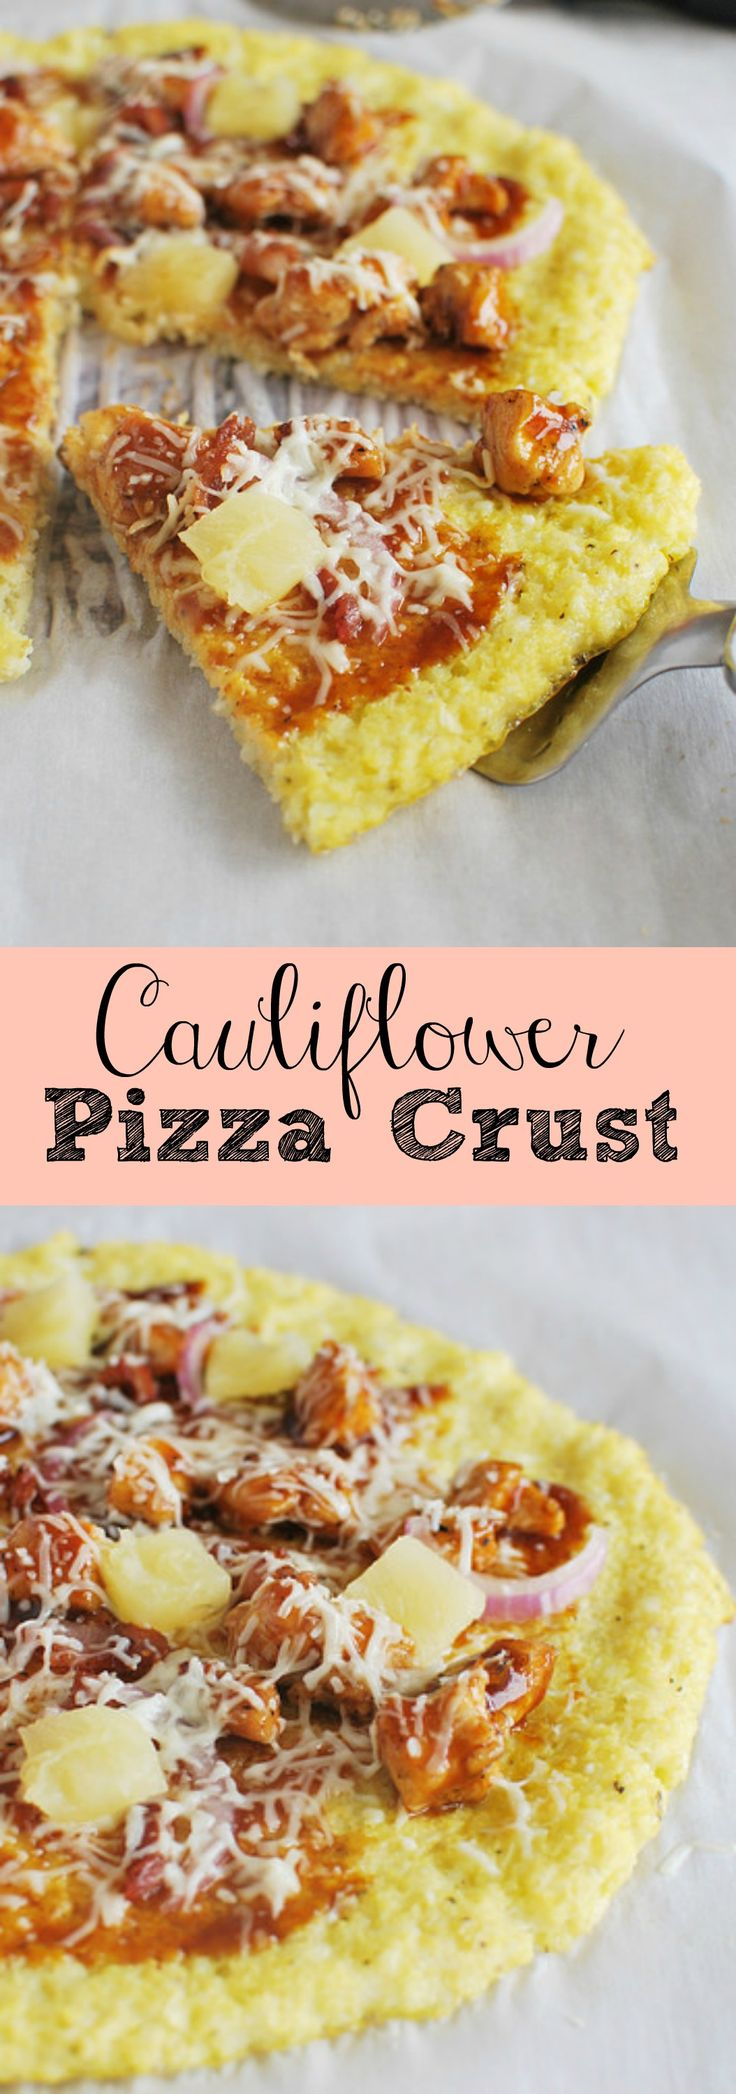 Cauliflower Pizza Crust - a healthy and low carb way to enjoy pizza! This is so delicious!